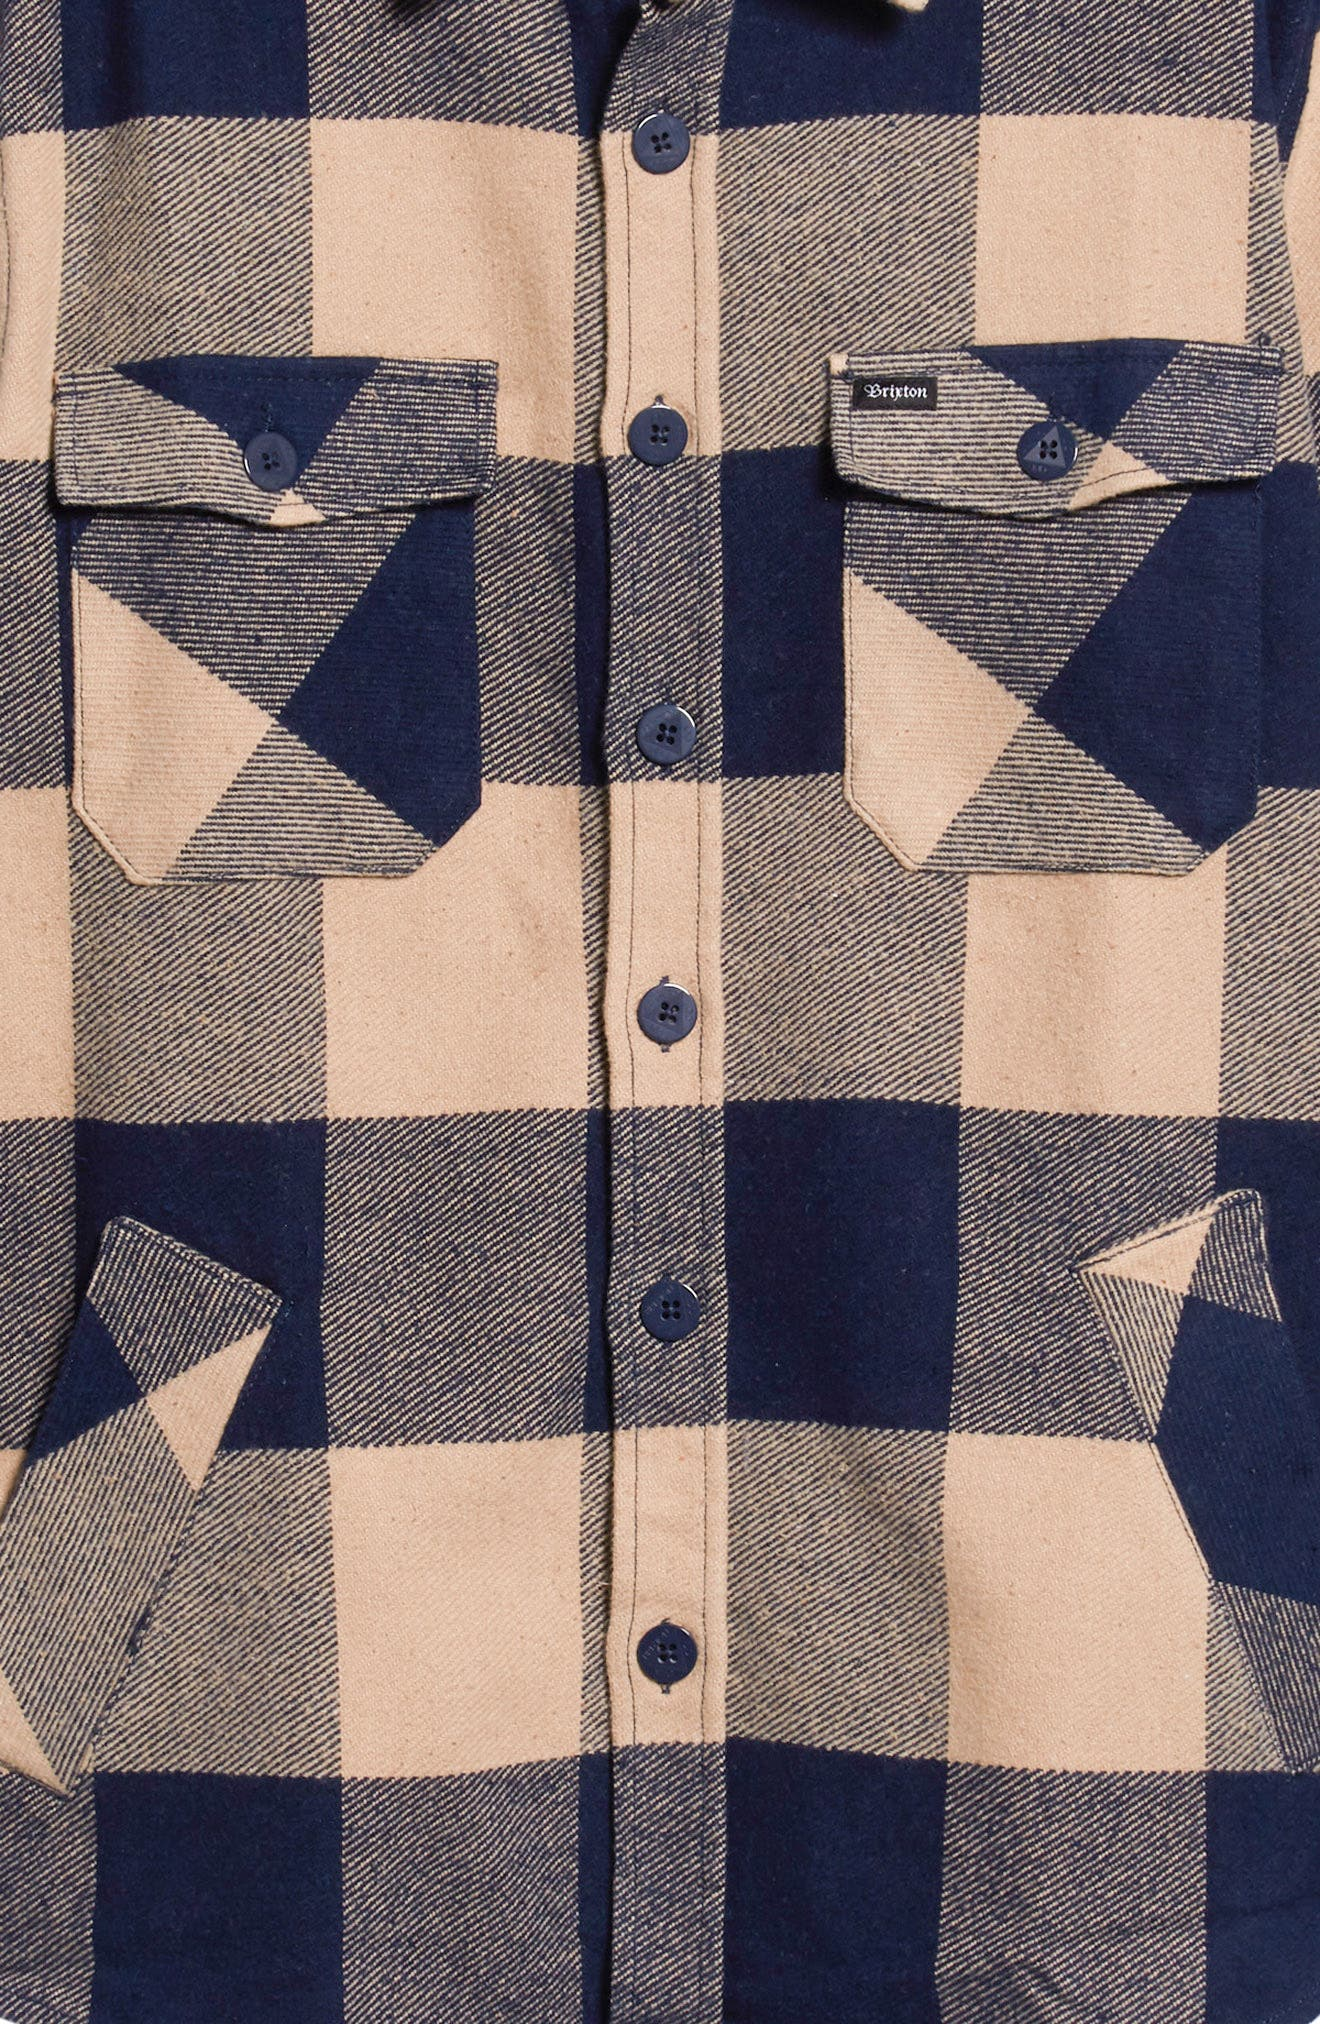 Durham Flannel Shirt,                             Alternate thumbnail 6, color,                             NAVY/ CREAM